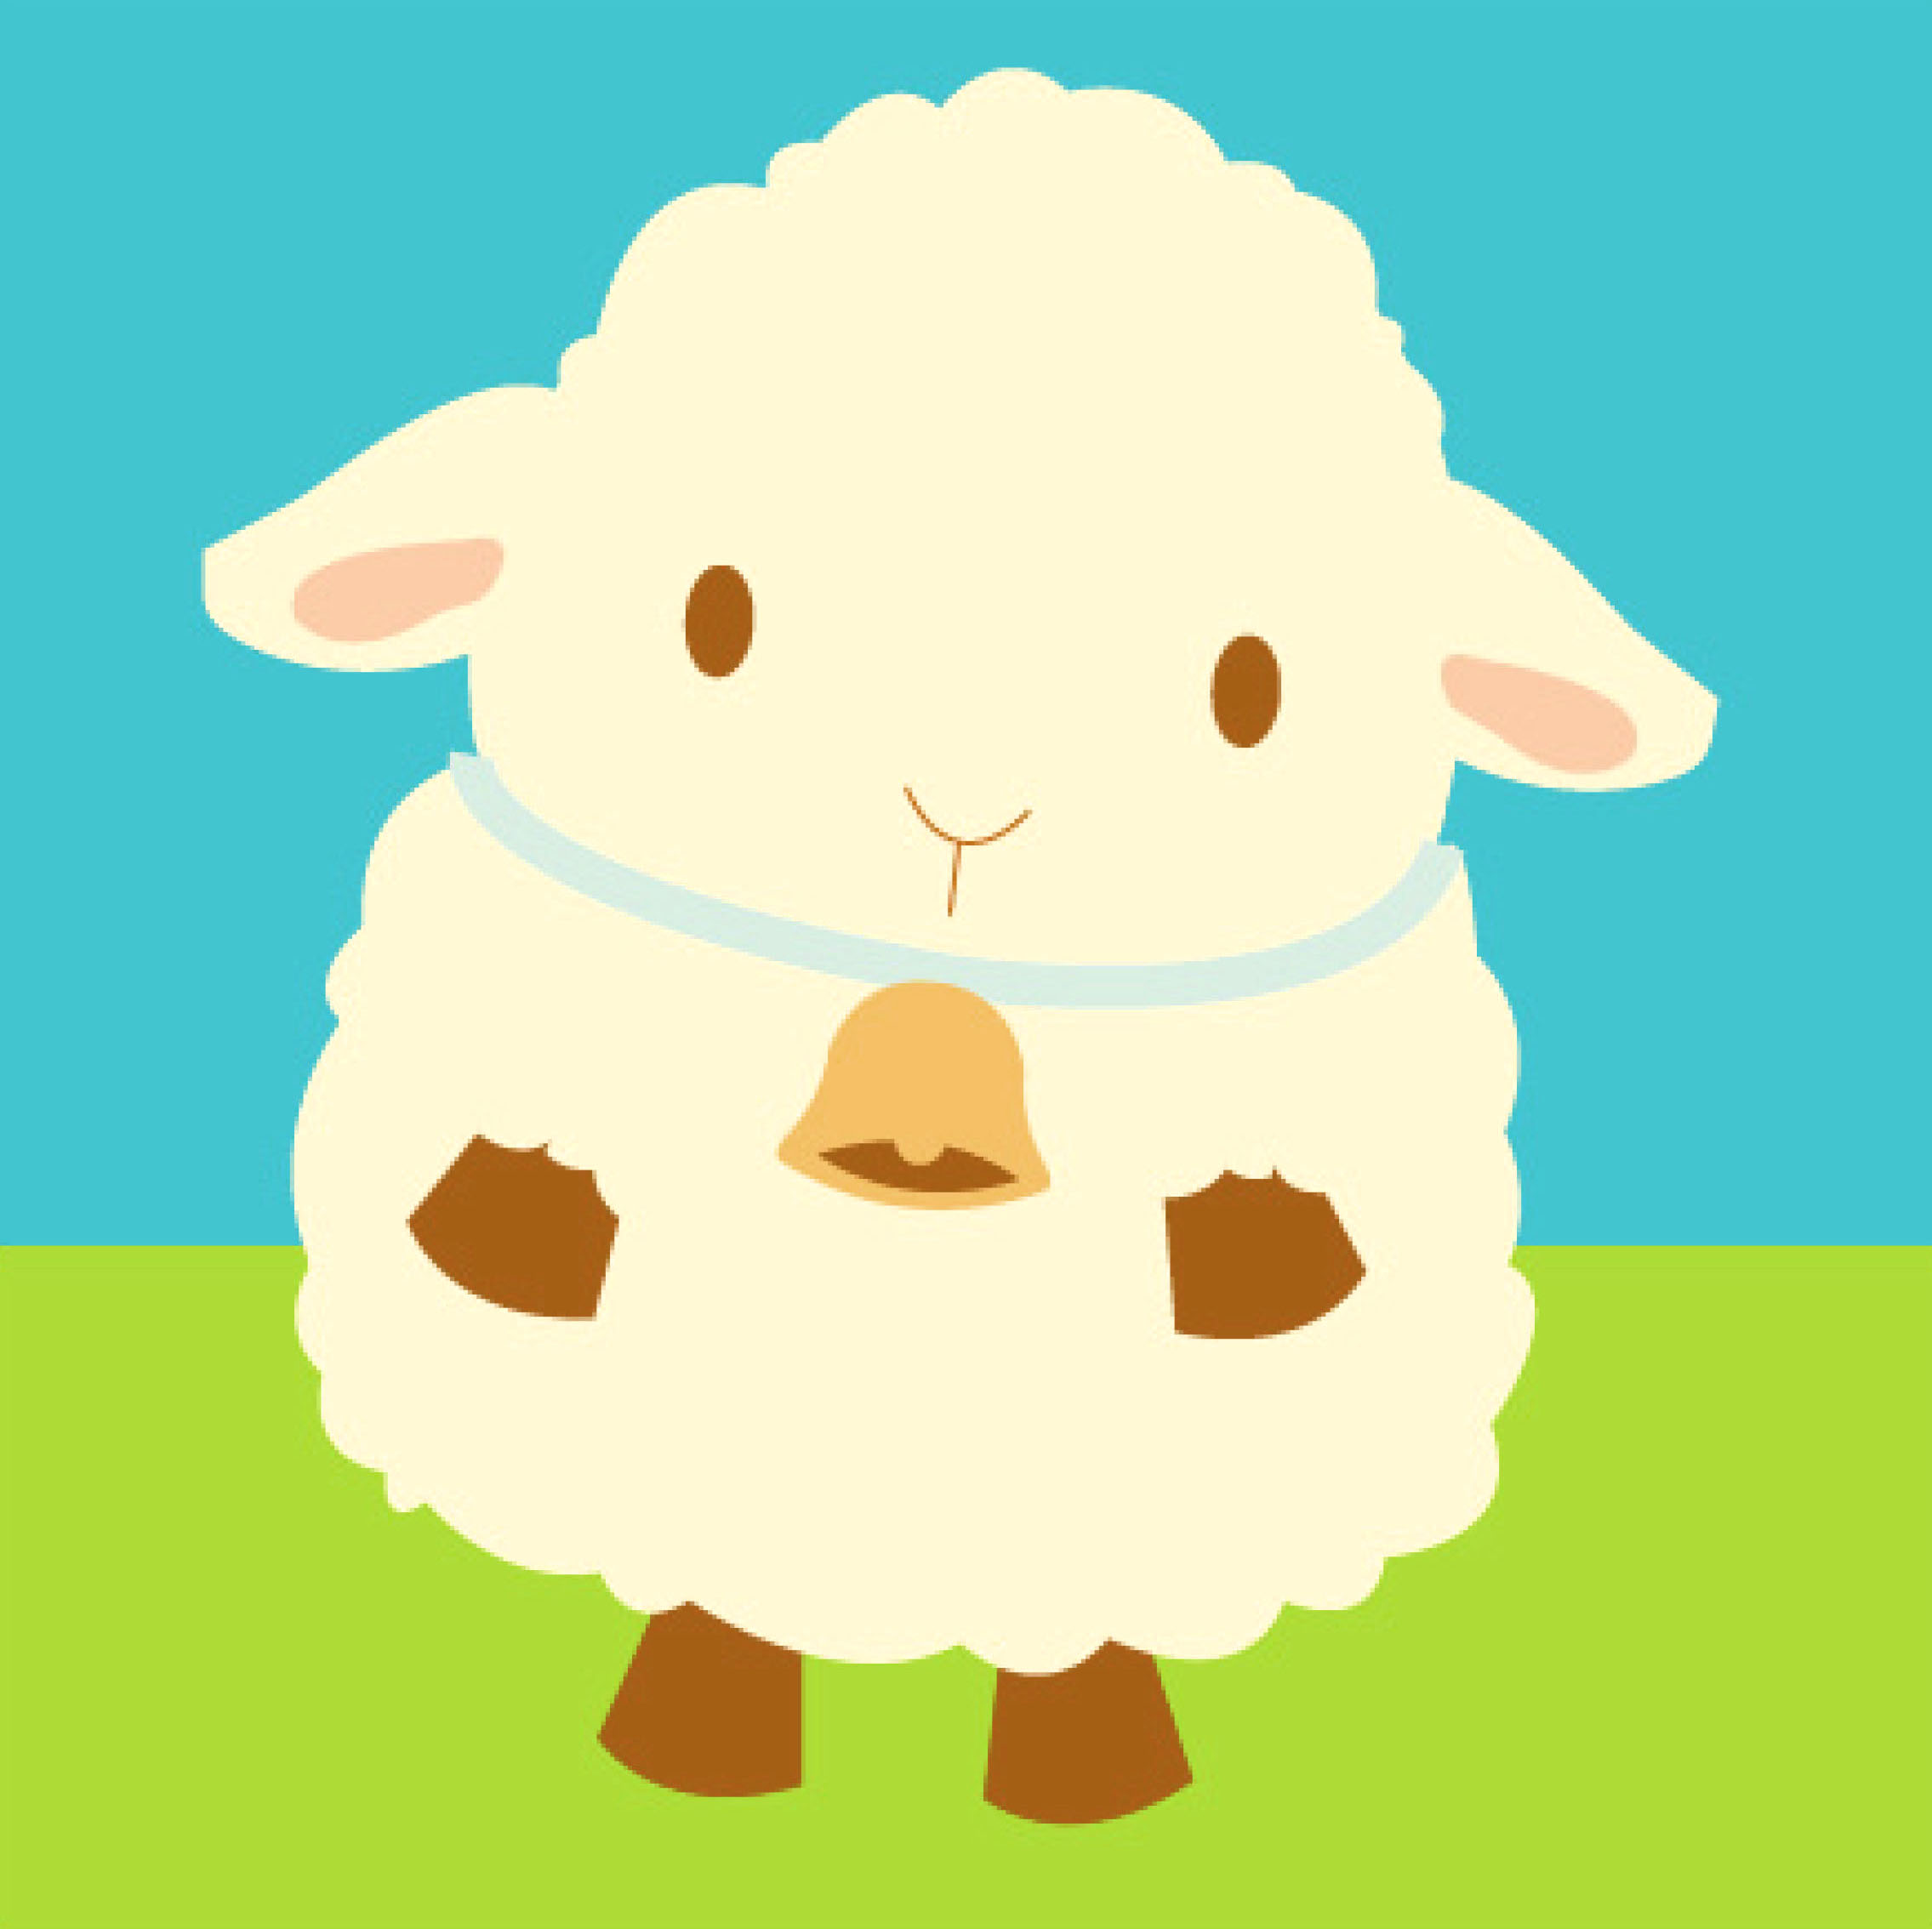 Cute sheep clipart.